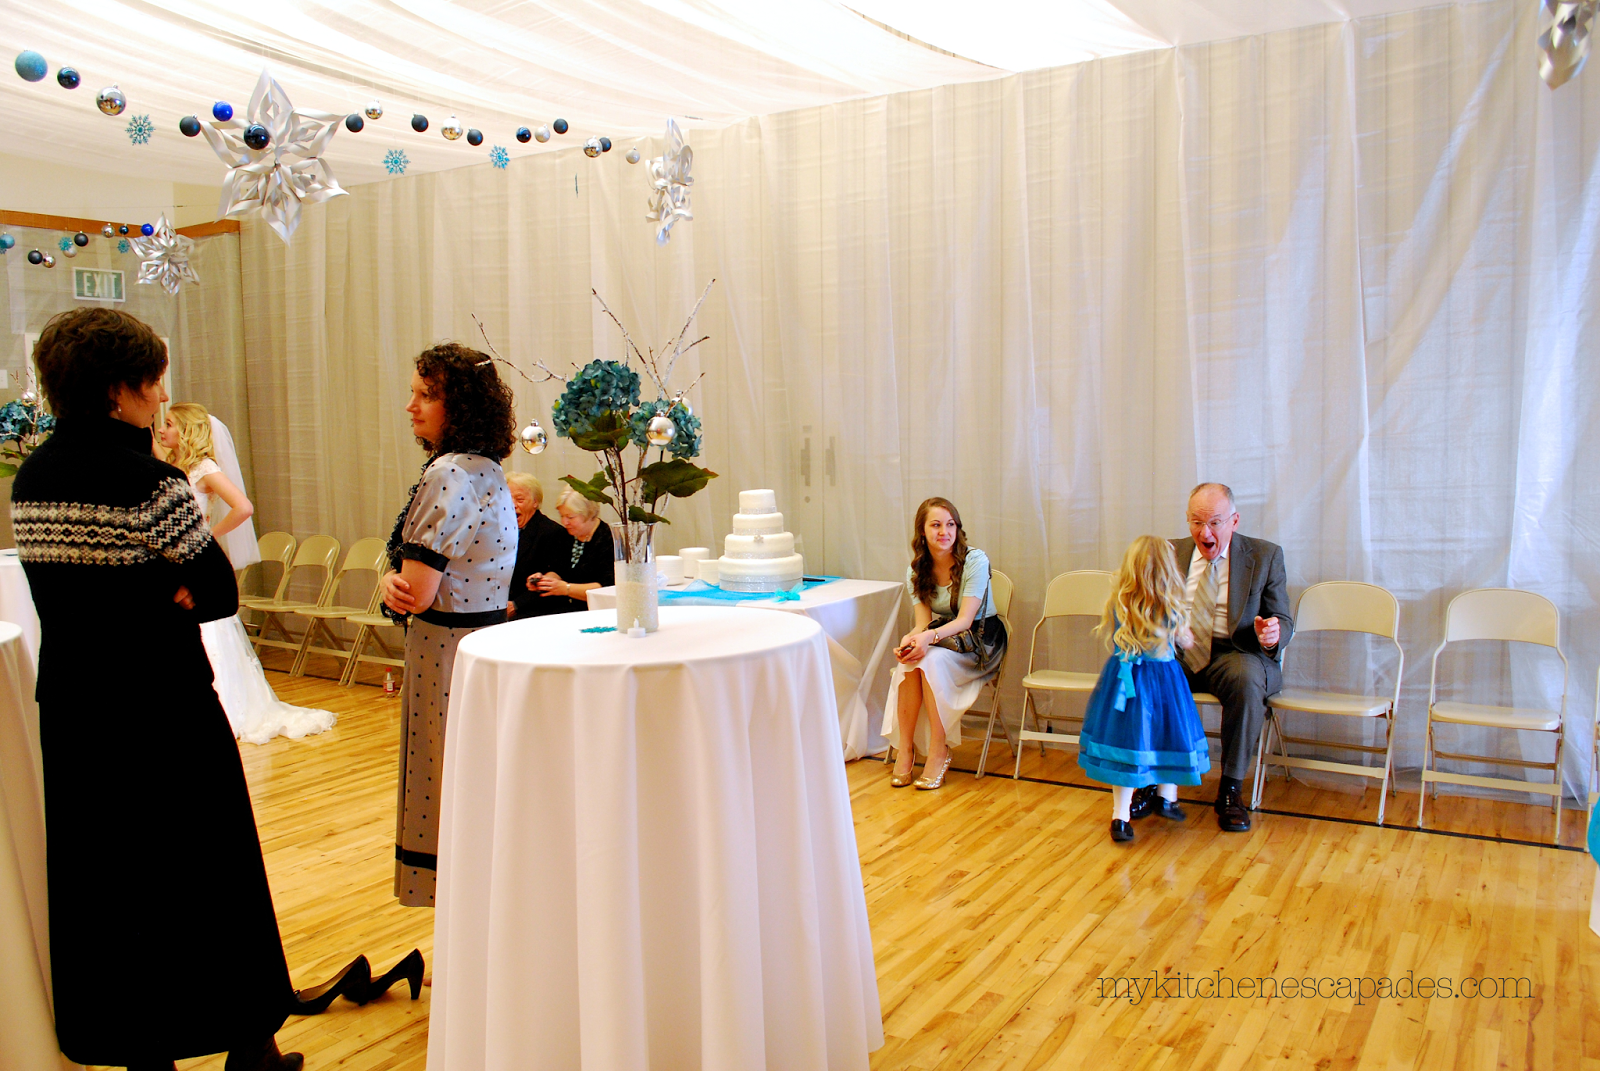 How to drape material for a wedding ceiling